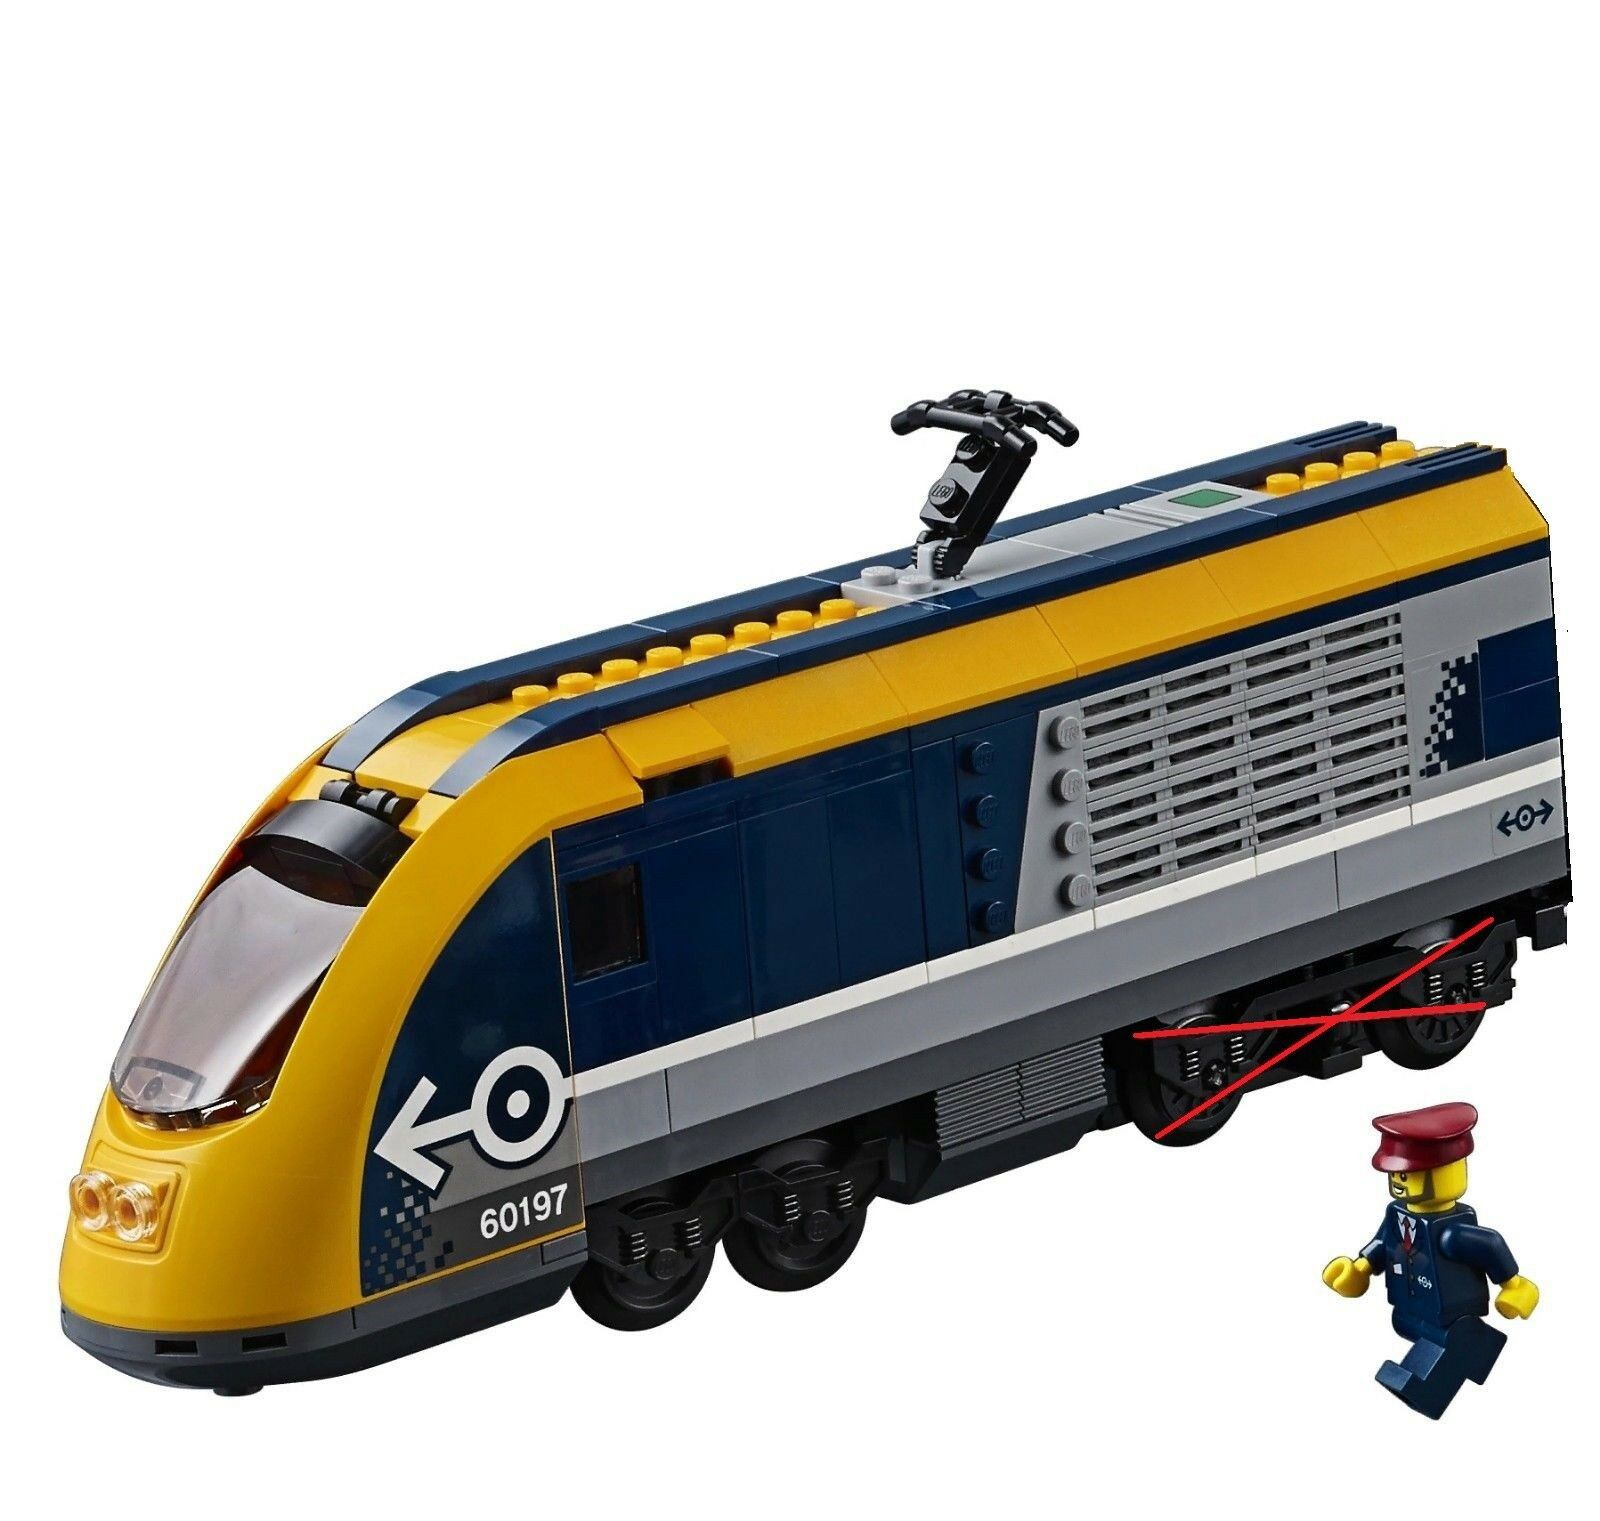 LEGO City Passenger train 60197 Locomotive only - No Powered UP